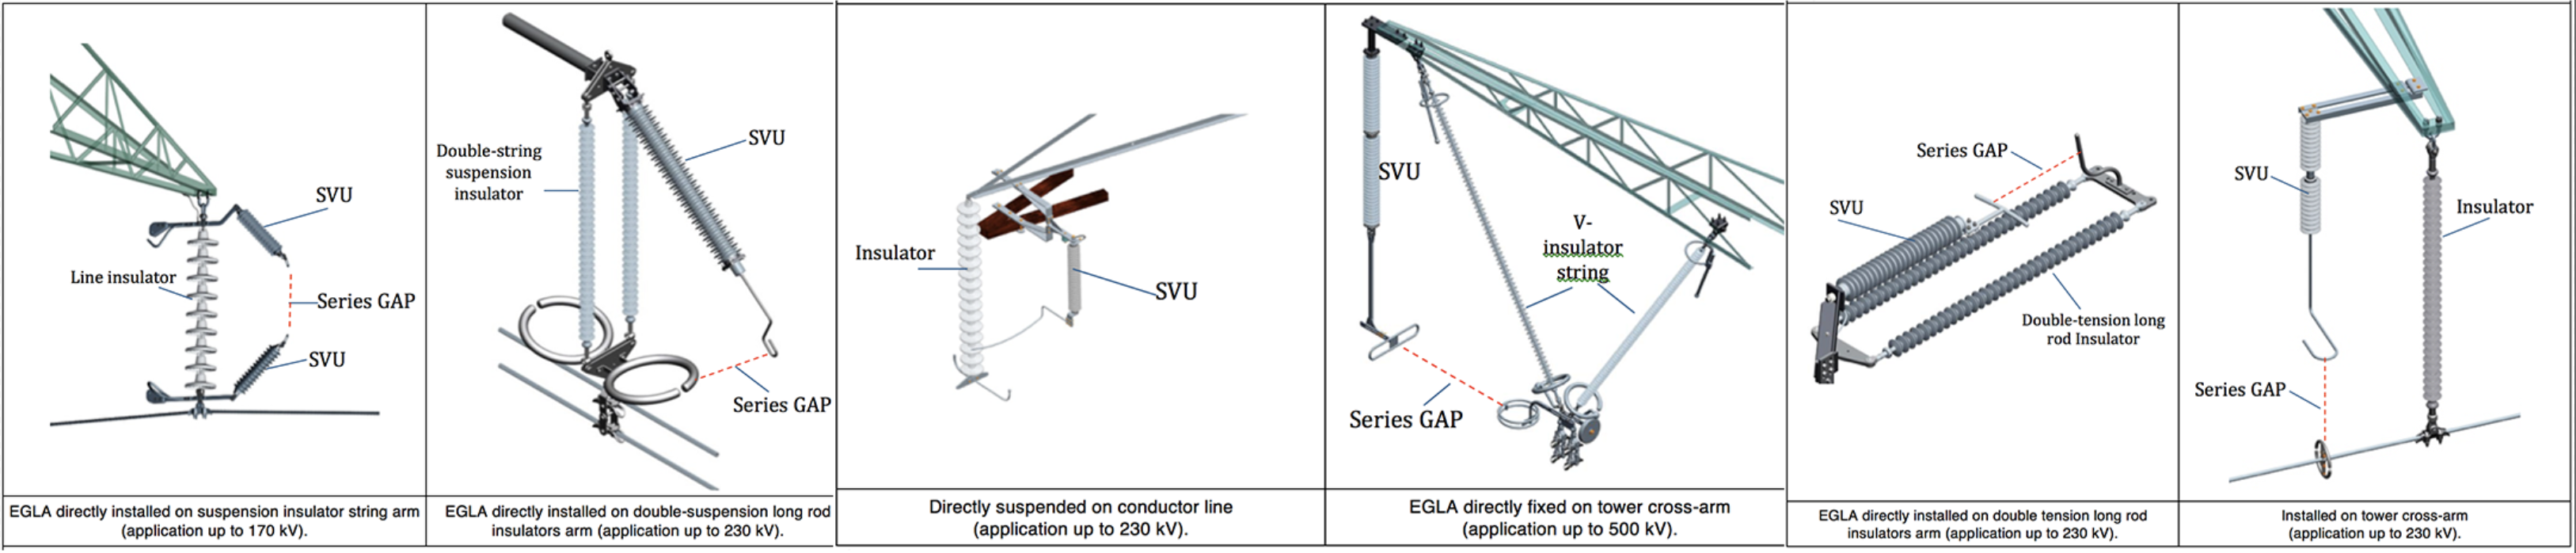 The compact design of the EGLA allows installation and lightning protection even on existing towers with very small clearances, as is mostly the case for multi-circuit towers. EGLAs are available to protect overhead lines with system voltages of up to 550 kV. line surge arresters Advantages of Line Surge Arresters Screen Shot 2016 06 30 at 14